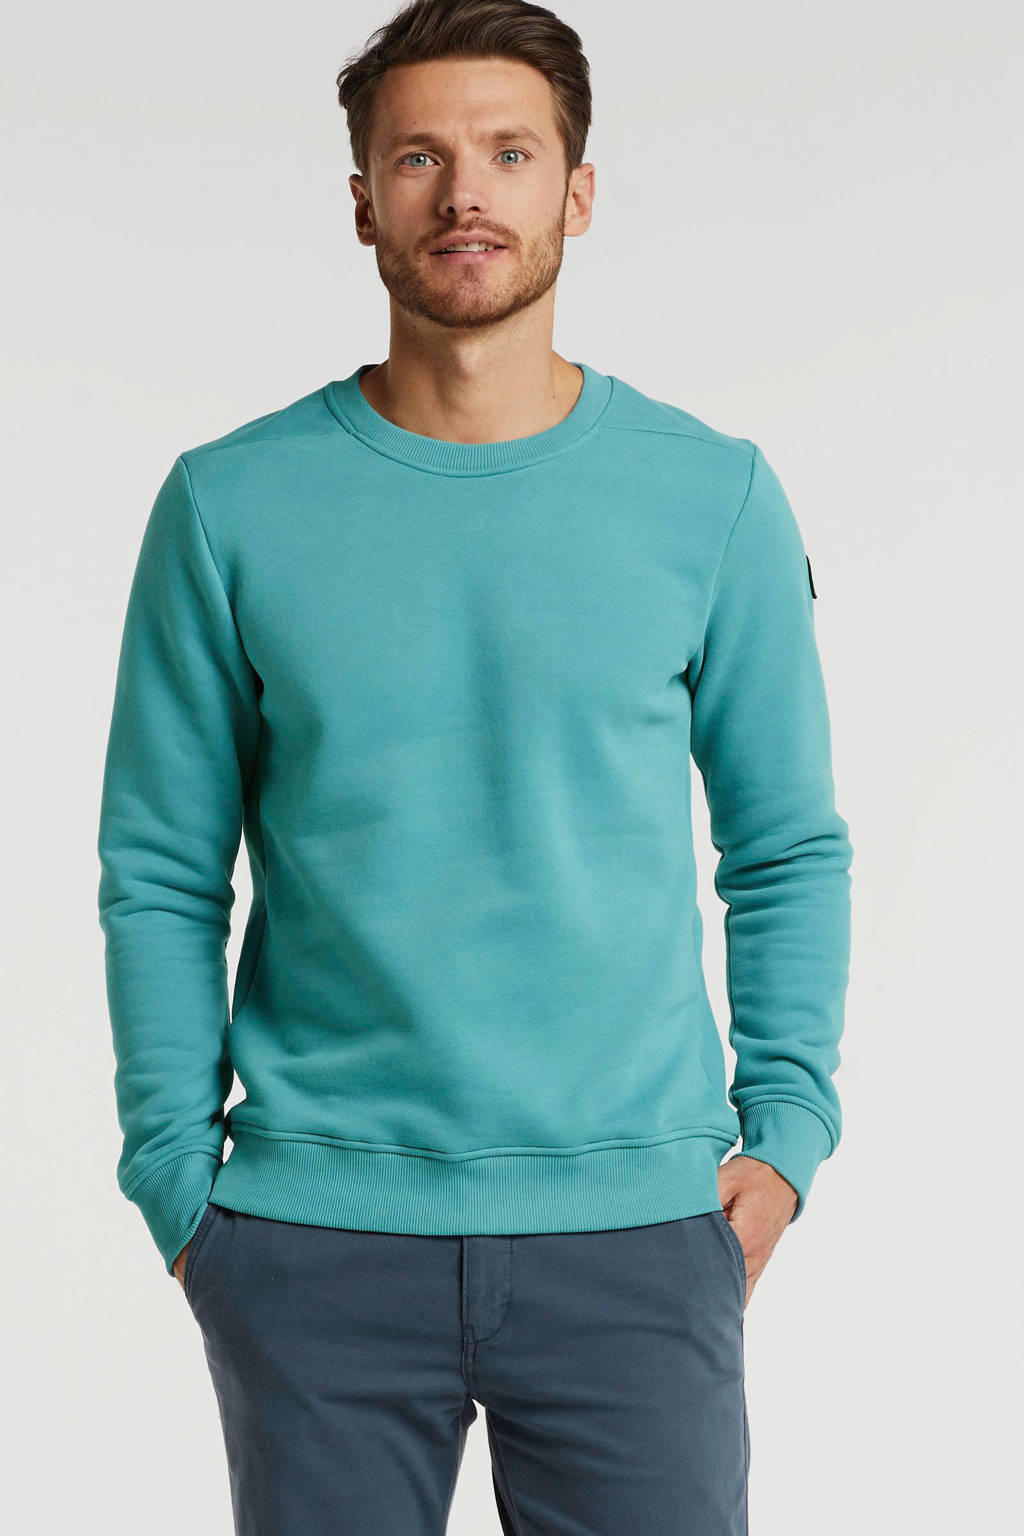 JACK & JONES PREMIUM sweater adriatic blue, Adriatic Blue